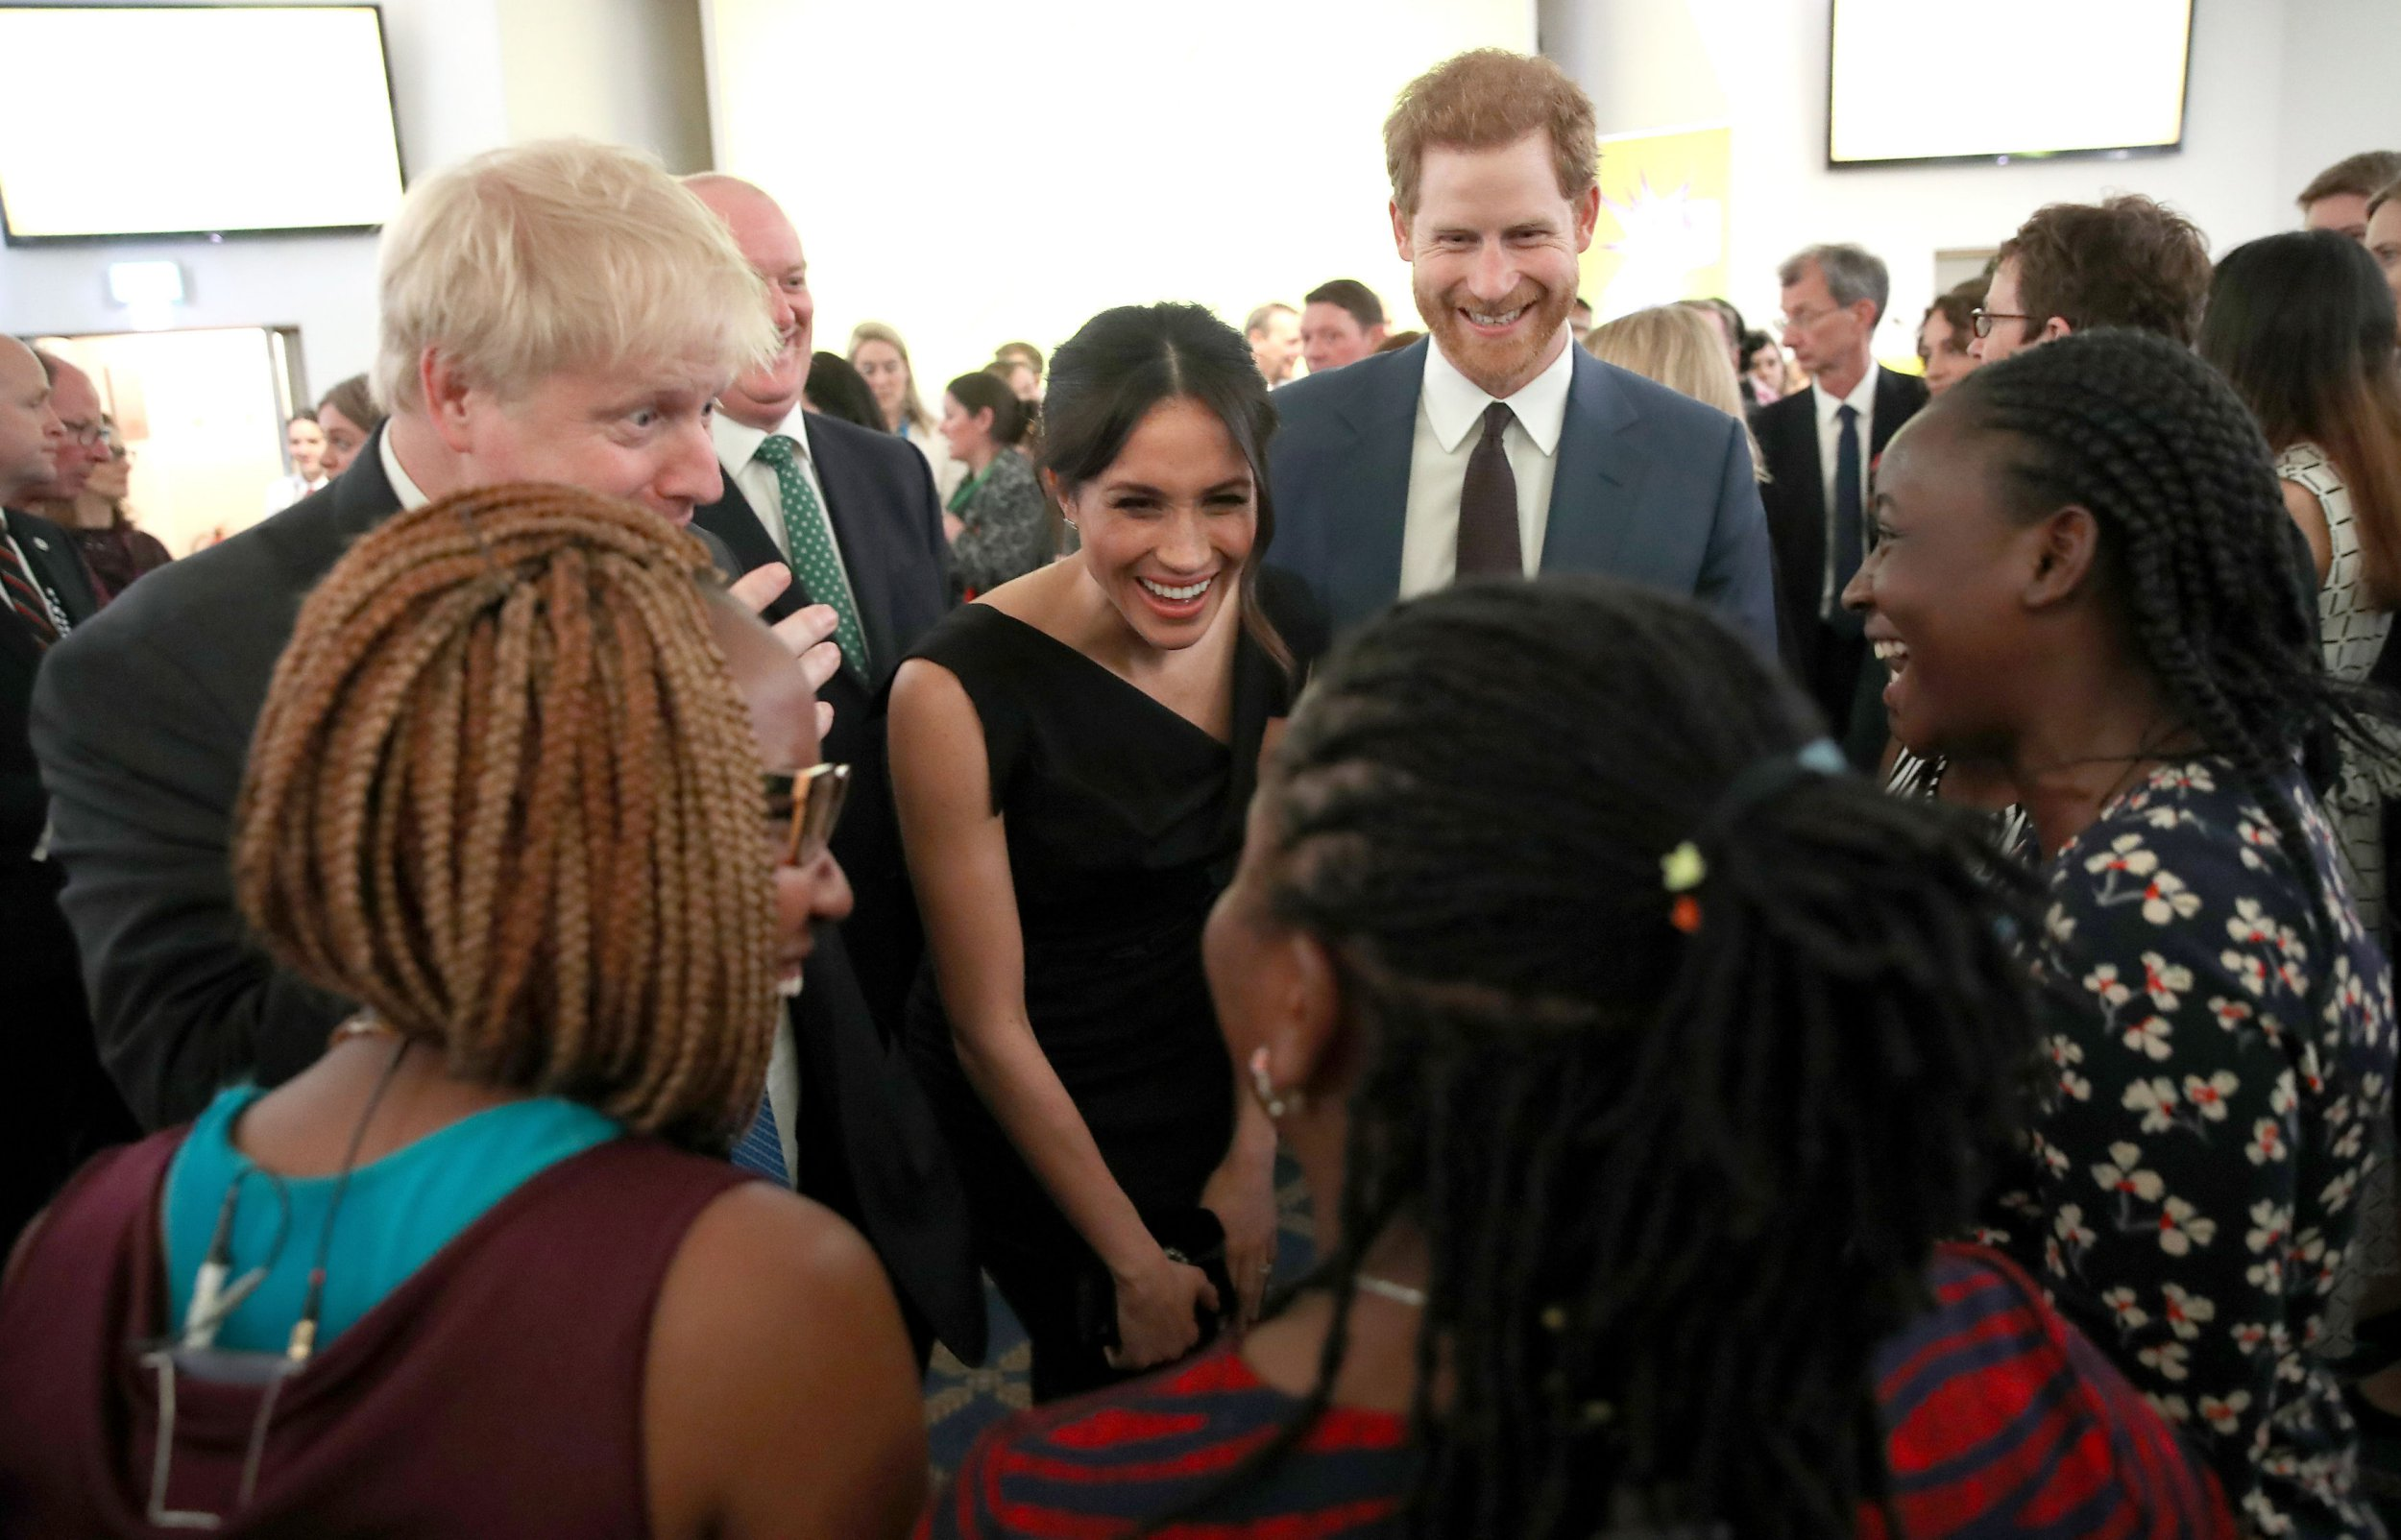 Foreign Secretary Boris Johnson, Prince Harry and Meghan Markle speak to guests at a women's empowerment reception hosted by Mr Johnson at the Royal Aeronautical Society in London during the Commonwealth Heads of Government Meeting. PRESS ASSOCIATION Photo. Picture date: Thursday April 19, 2018. See PA story ROYAL Commonwealth. Photo credit should read: Chris Jackson/PA Wire